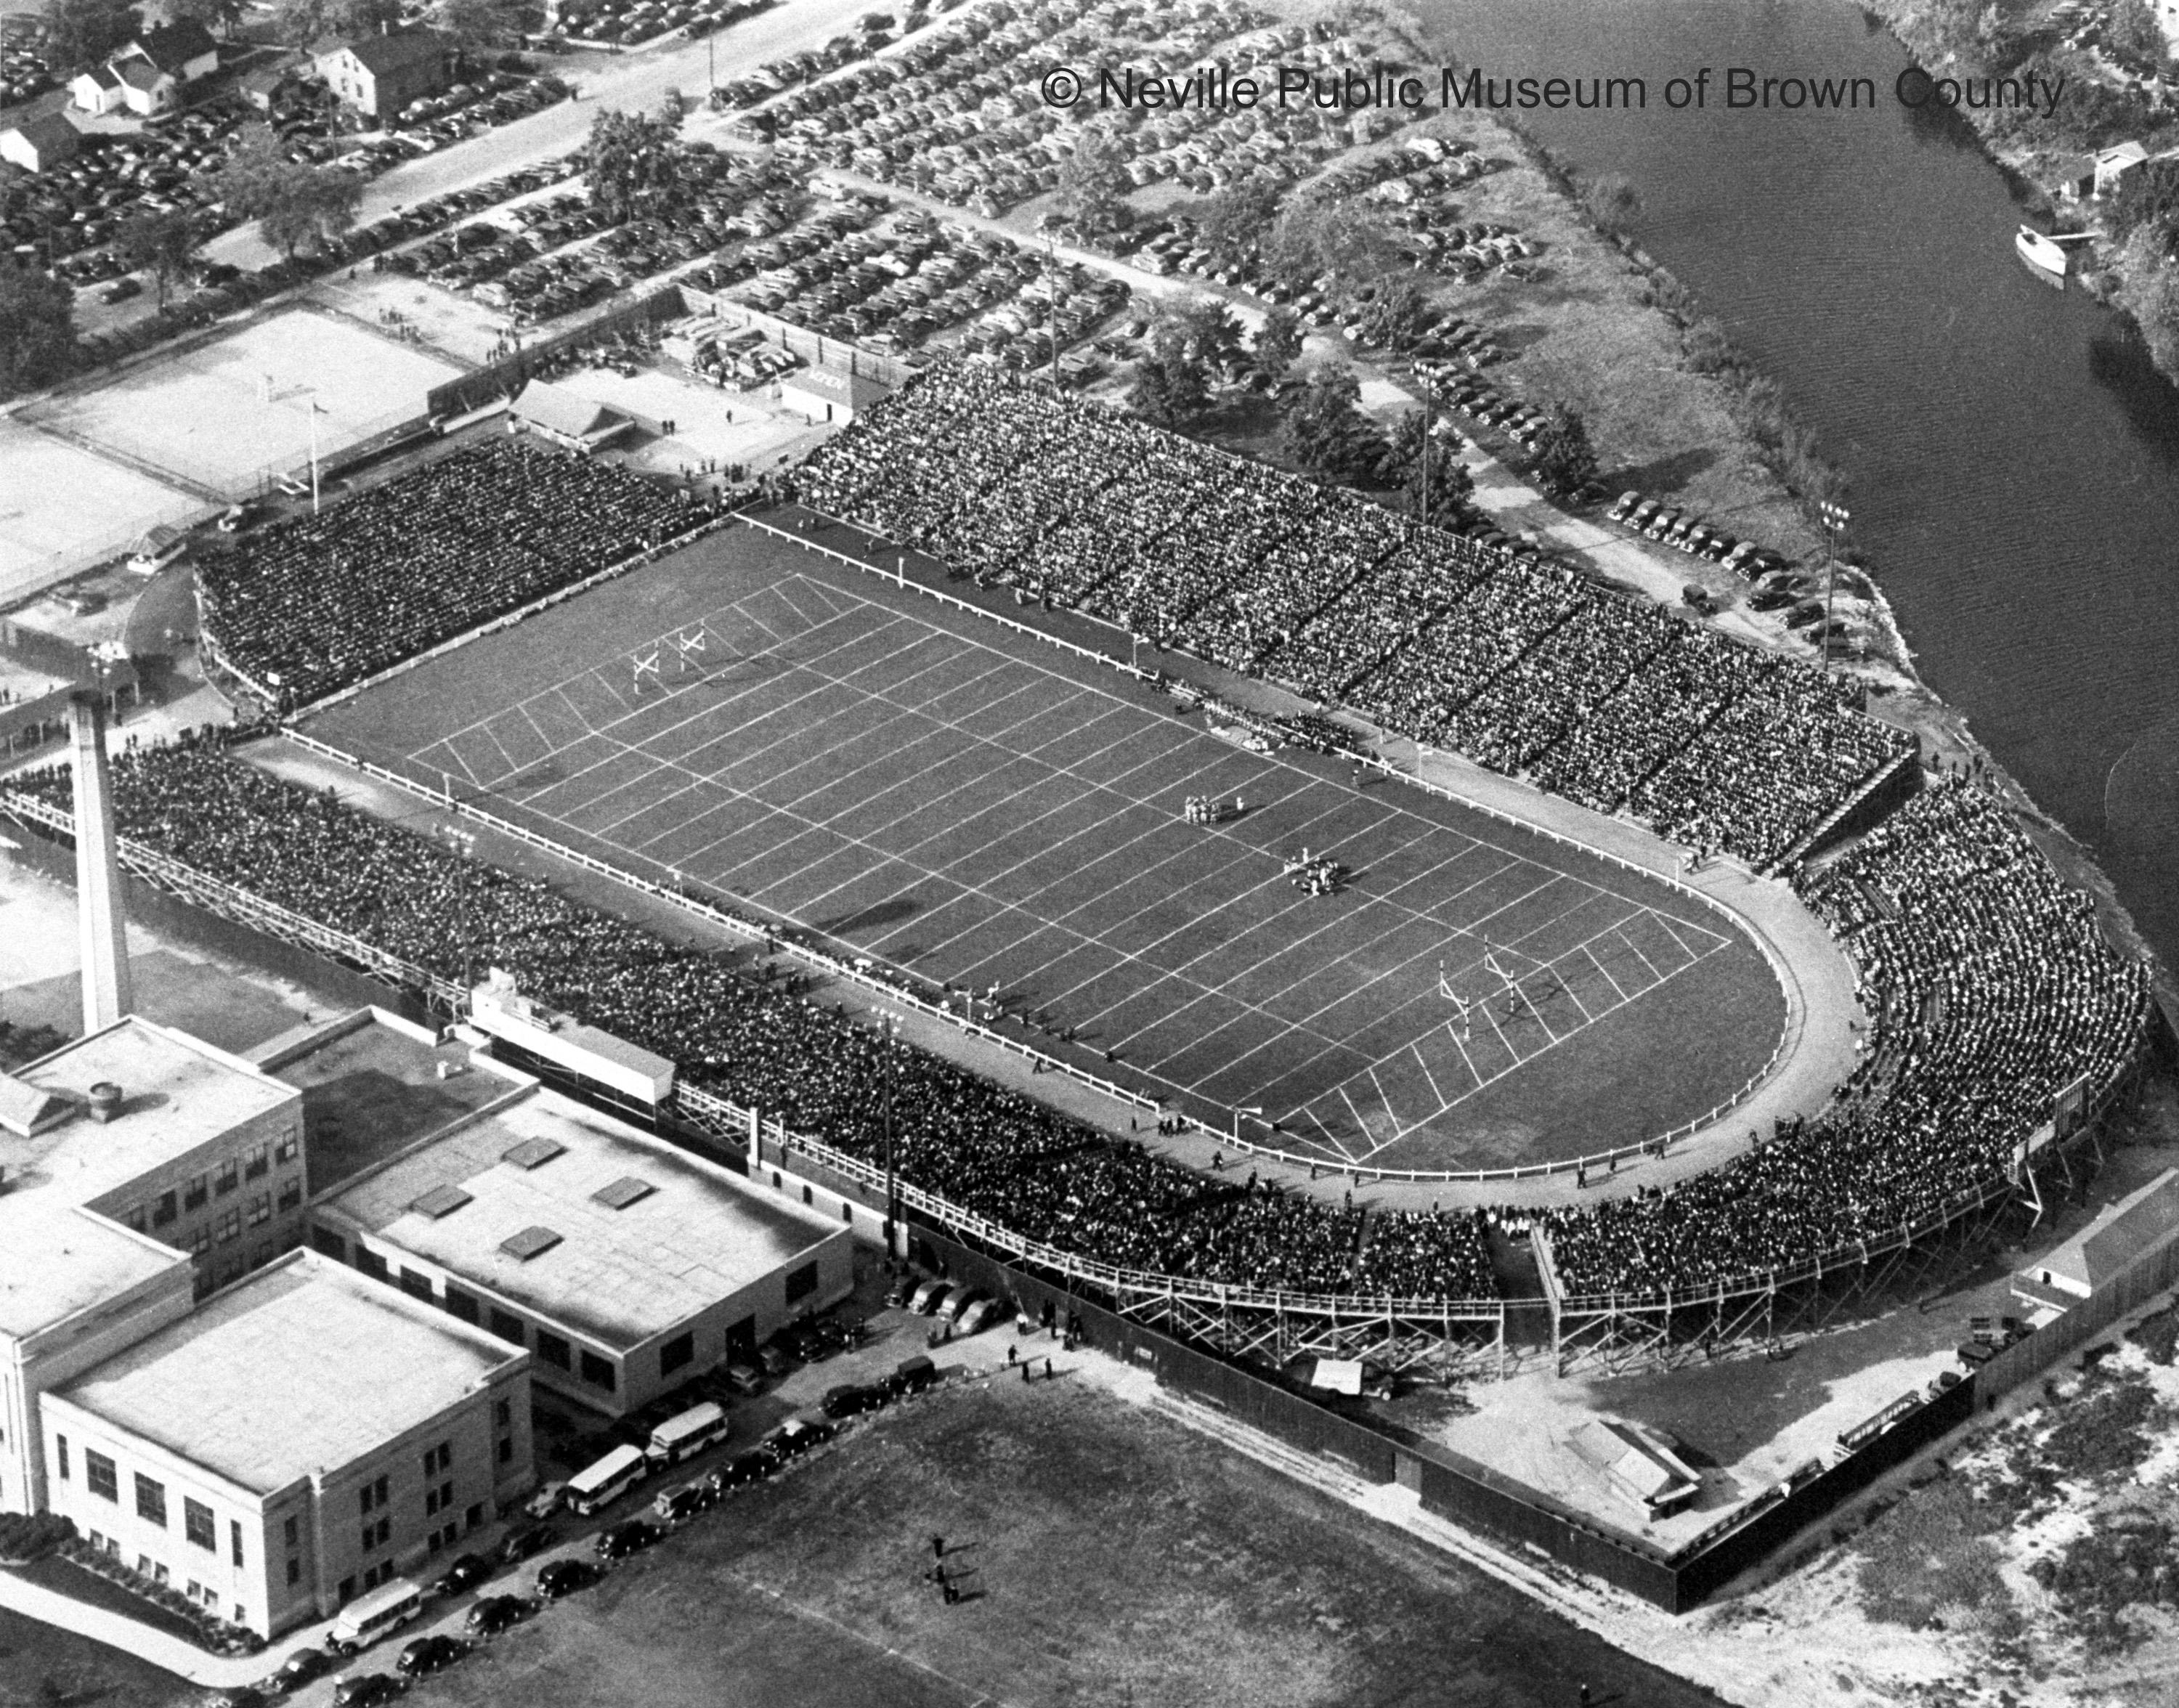 City Stadium at its peak capacity of 25,000 with its final horseshoe-shaped design. The field is still used today by Green Bay East High School, but the wooden stands have been replaced with far less seating. The horseshoe-shaped design no longer exists. (Courtesy: Neville Public Museum of Brown County)